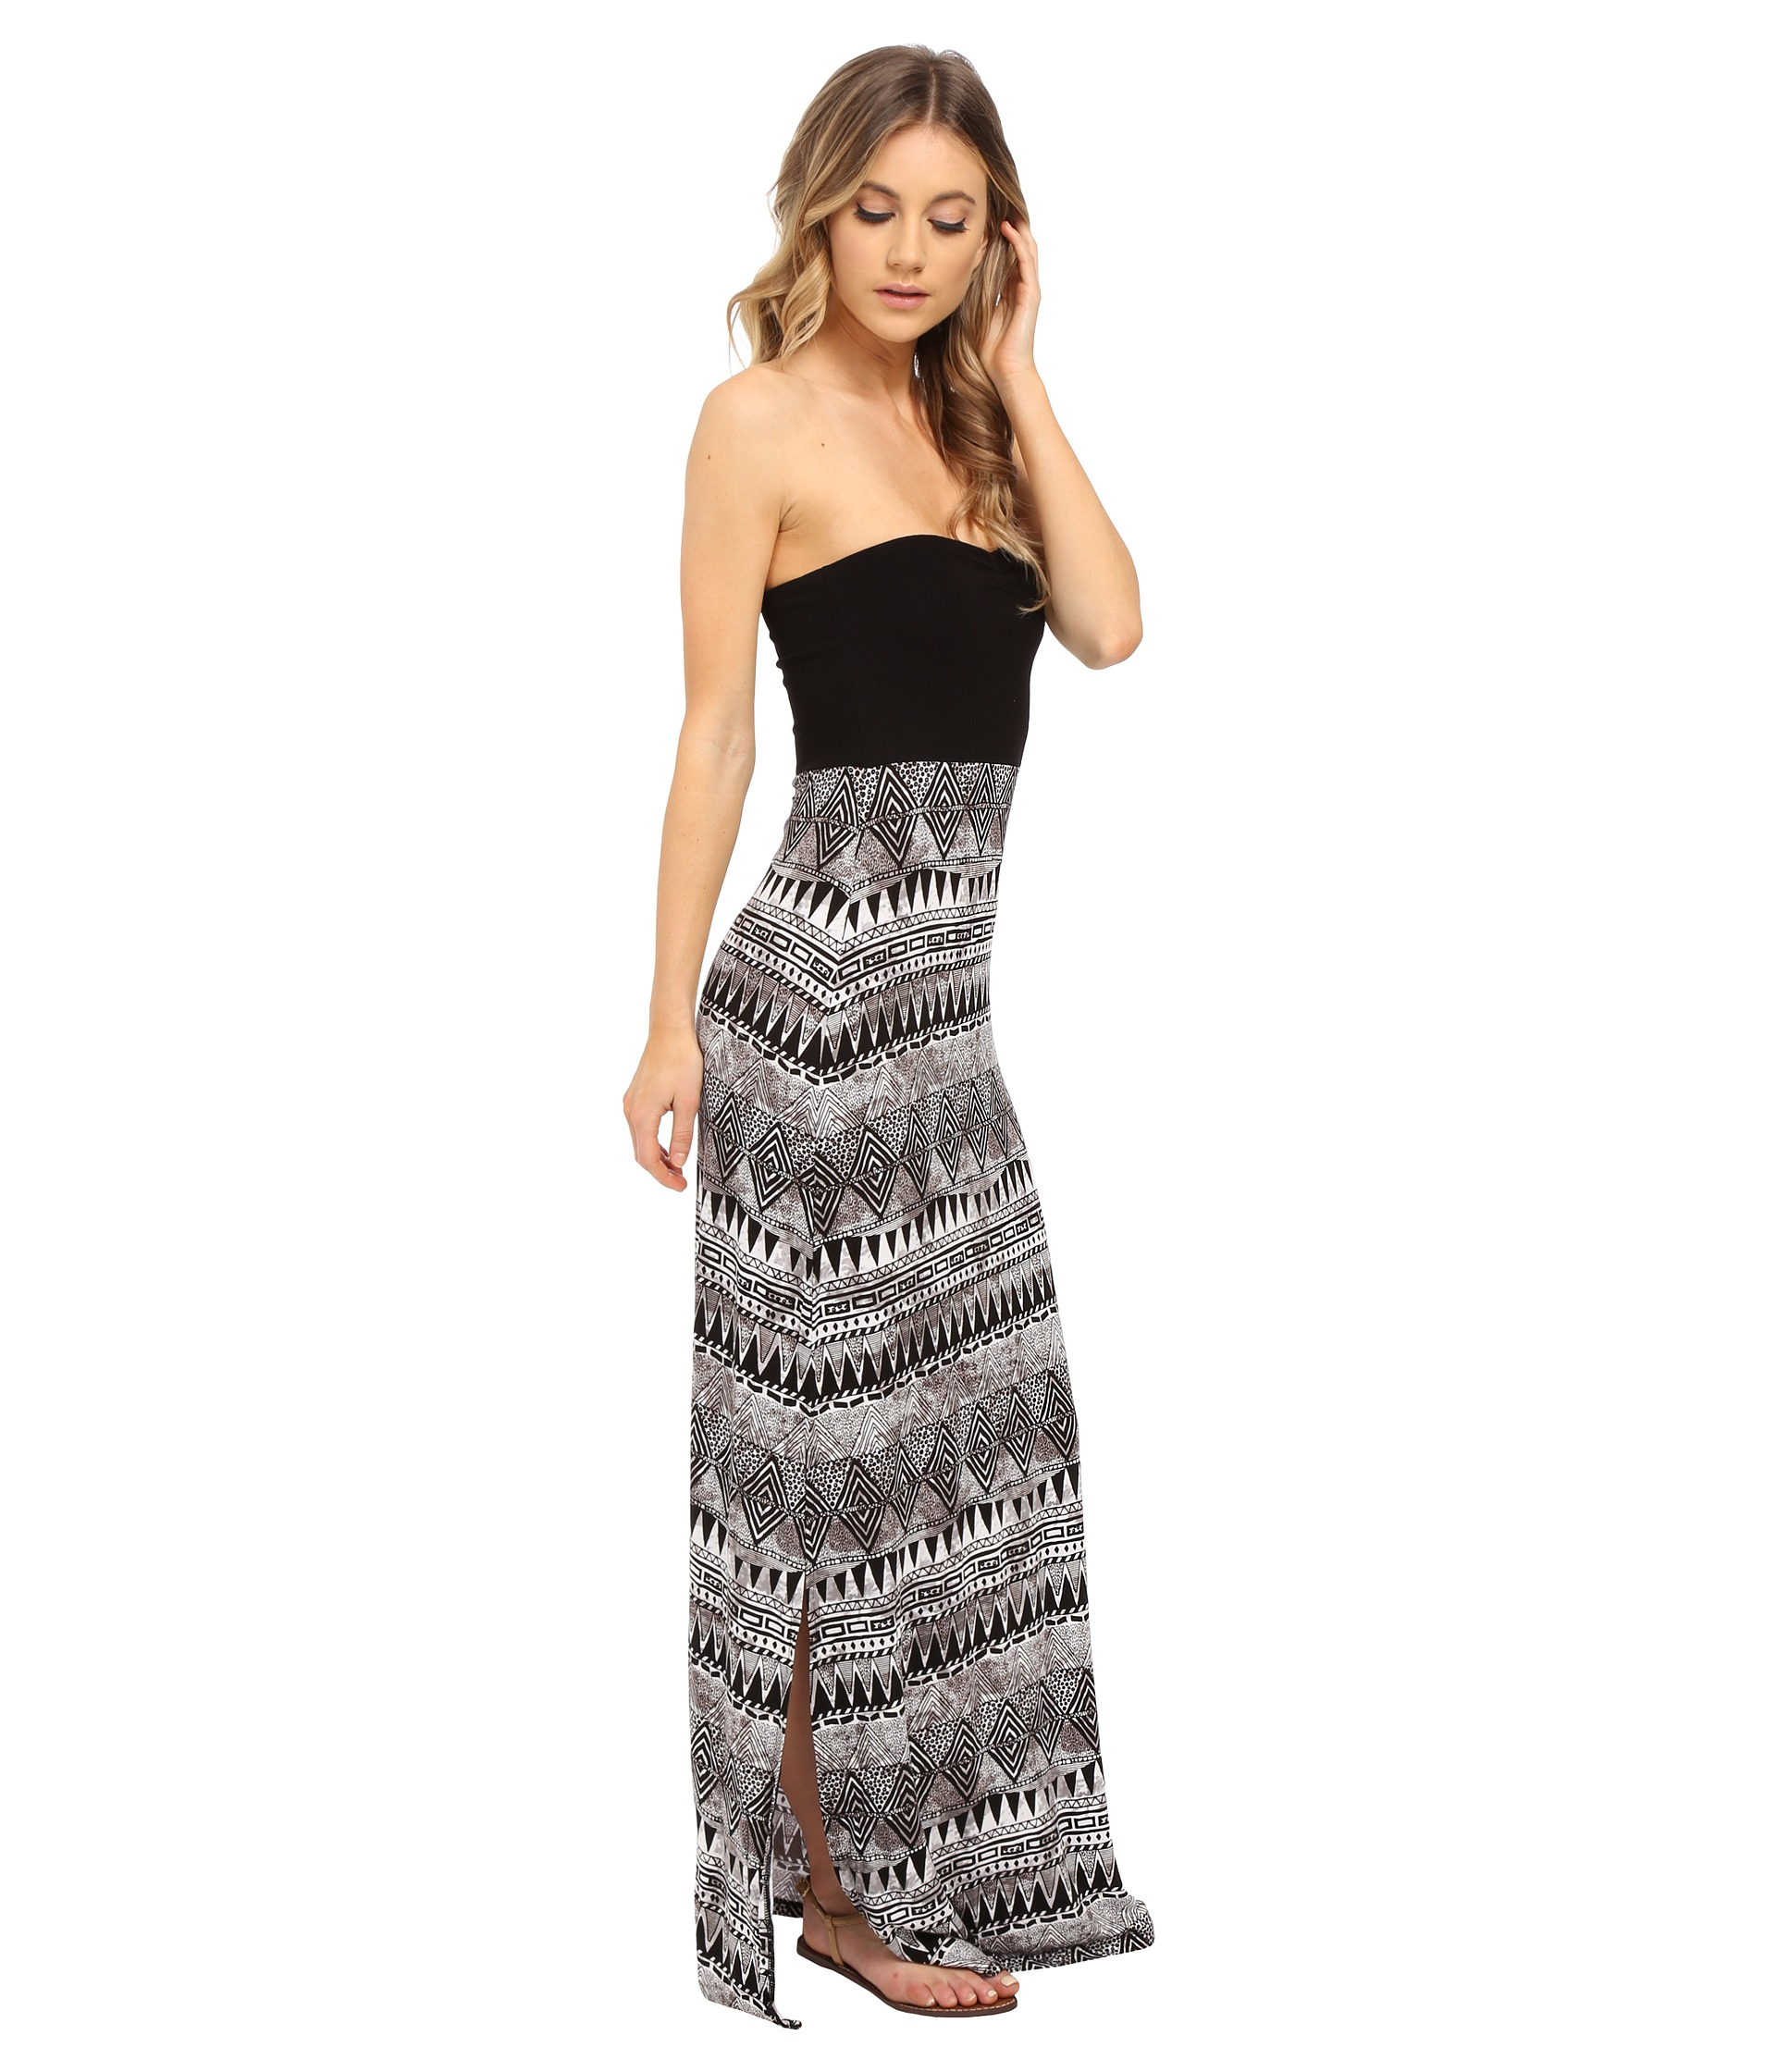 Hurley Tomboy Maxi Dress in White - Lyst